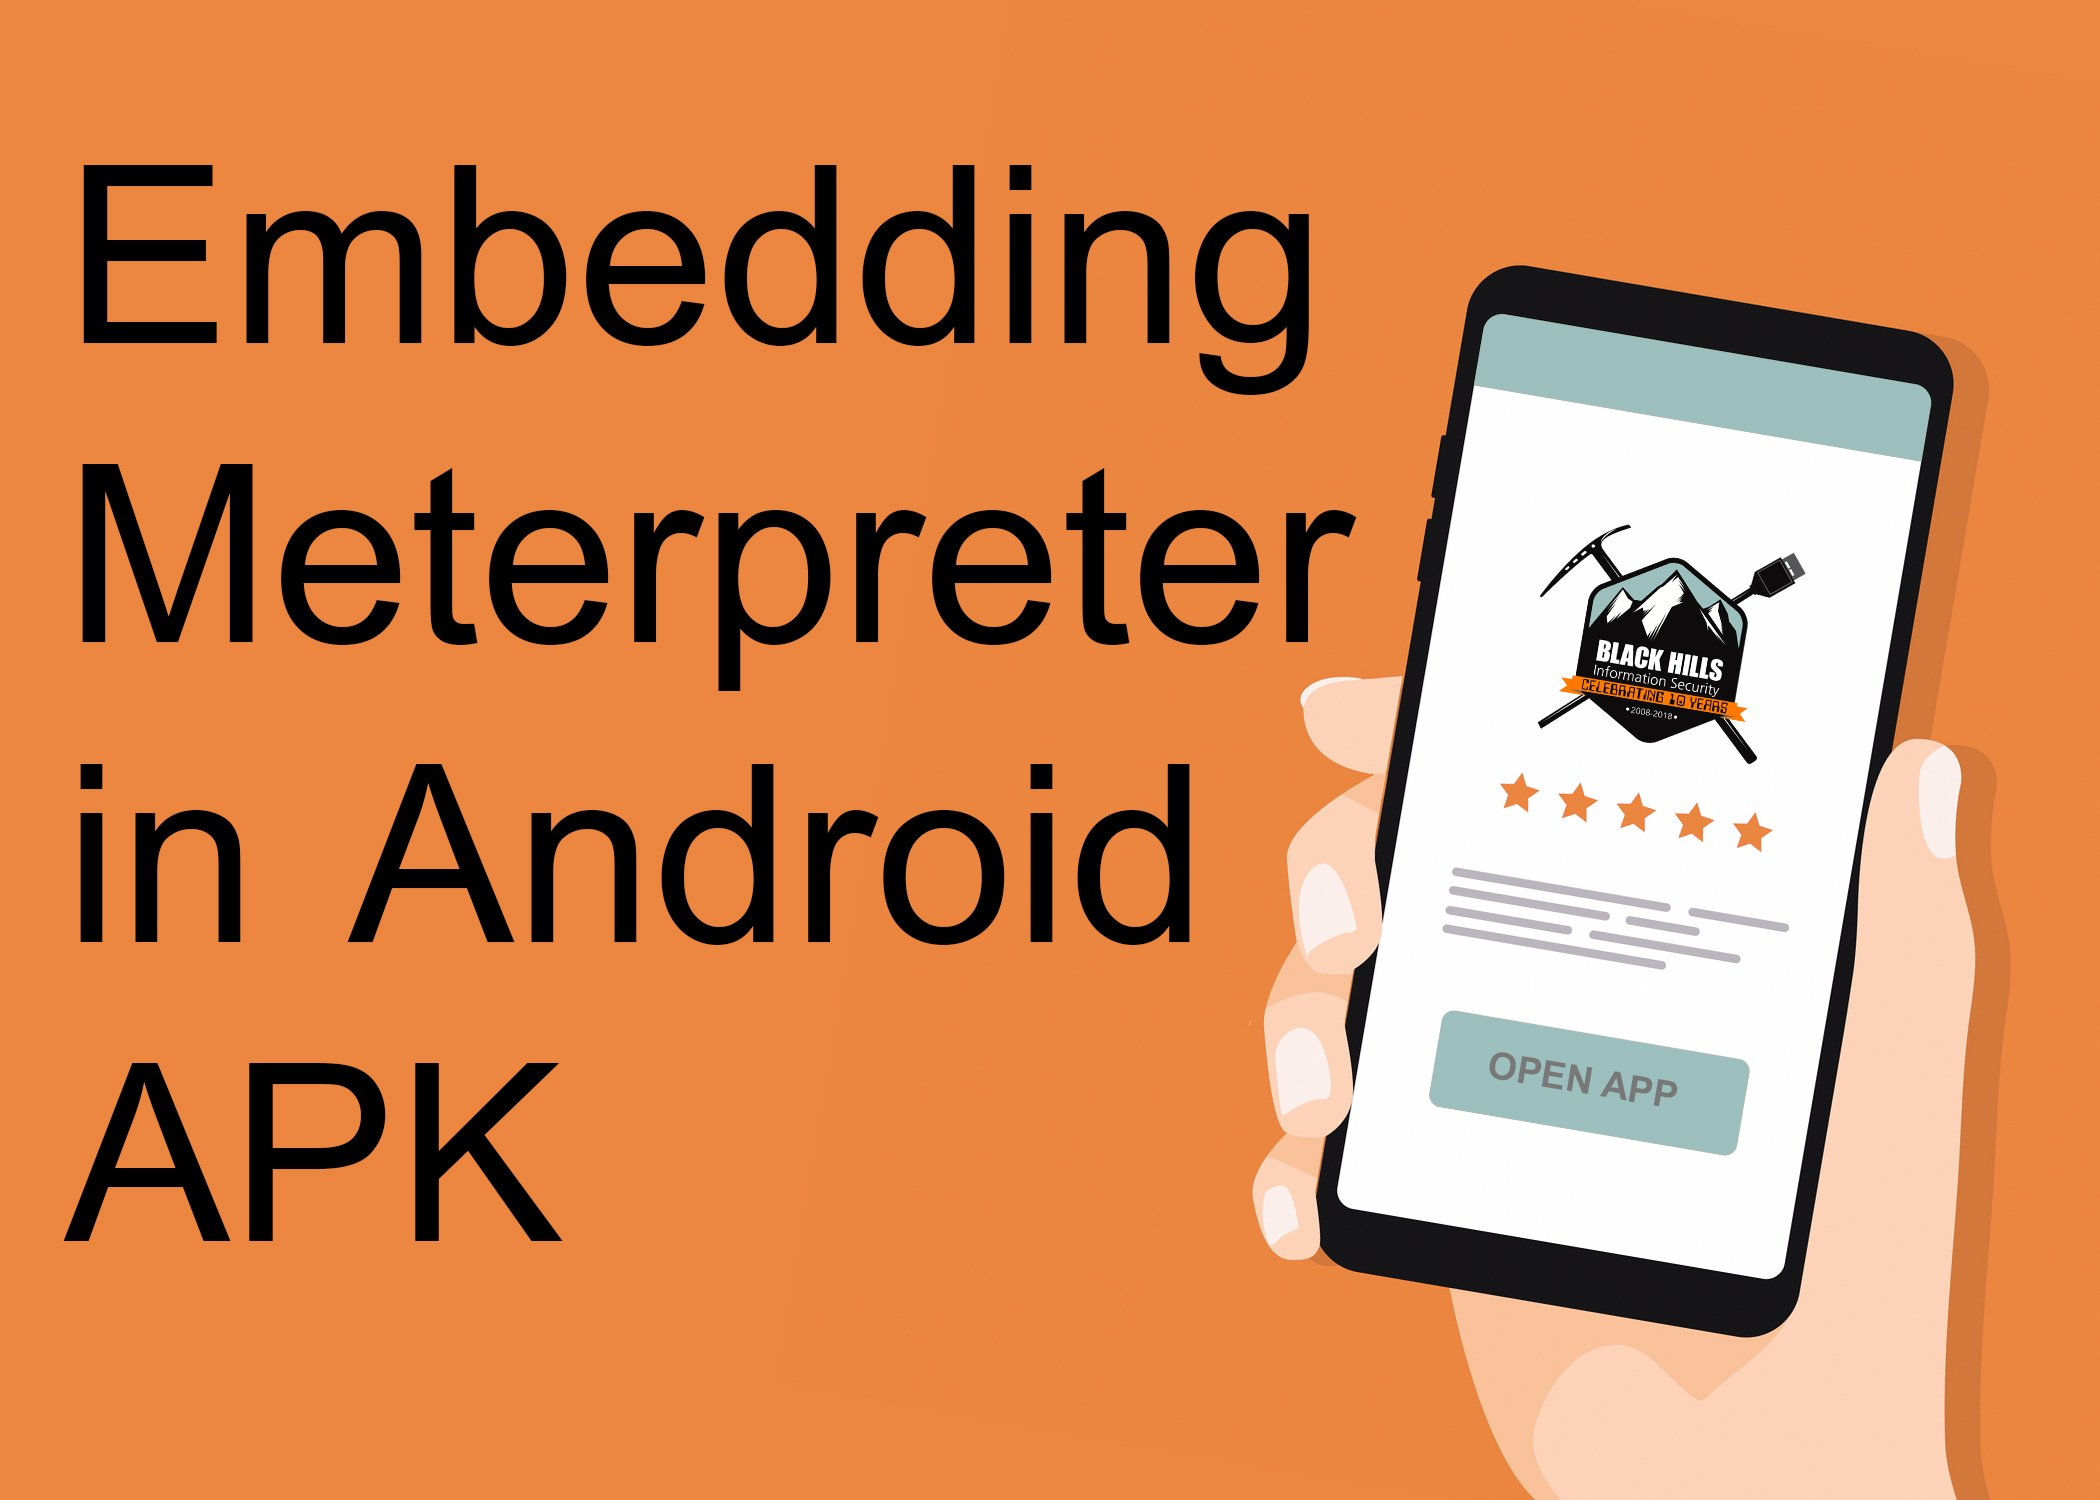 Embedding Meterpreter in Android APK - Black Hills Information Security